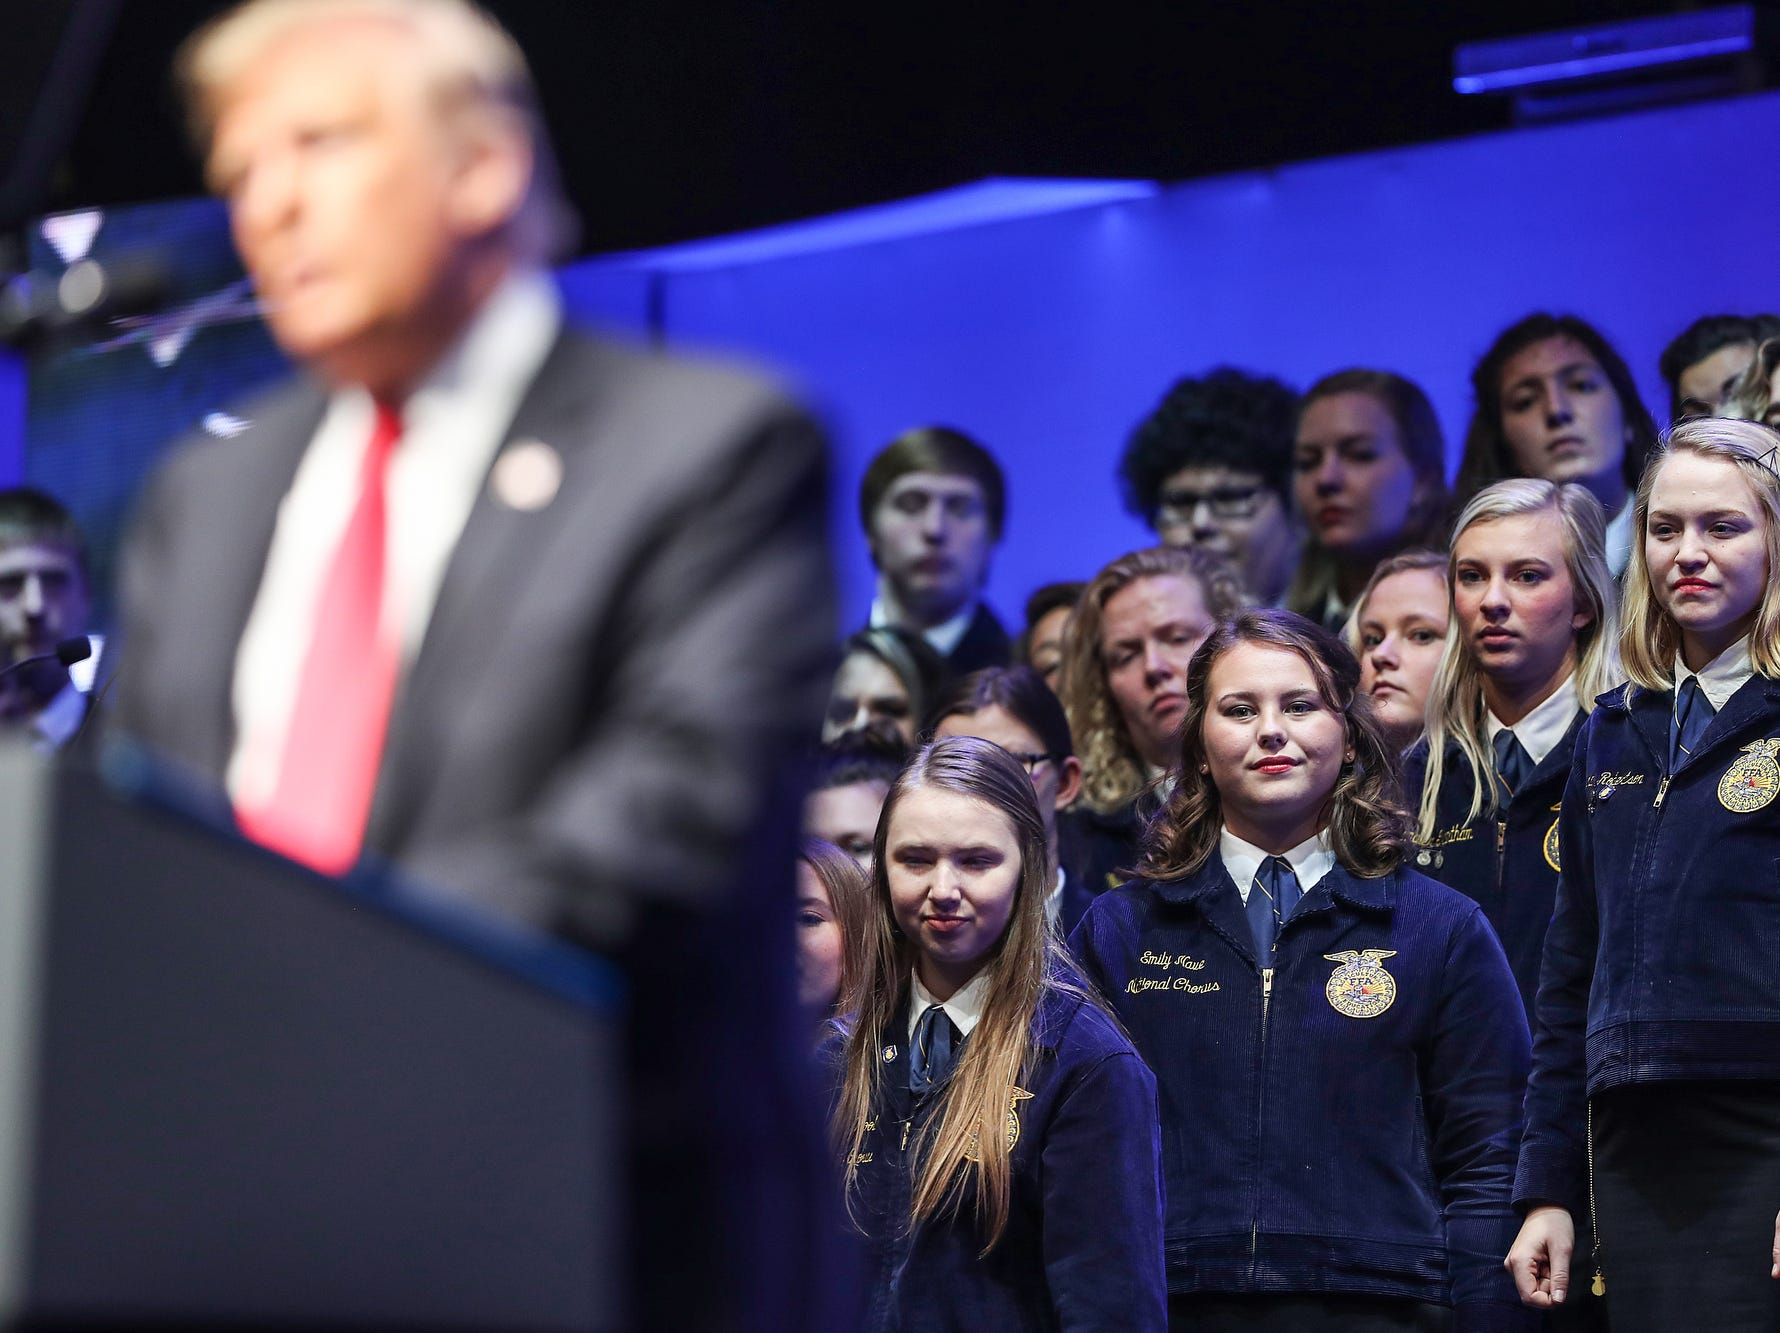 Attendees listen as President Donald Trump speaks to the annual Future Farmers of America Convention and Expo at Banker's Life Fieldhouse in Indianapolis, Saturday, Oct. 27, 2018.